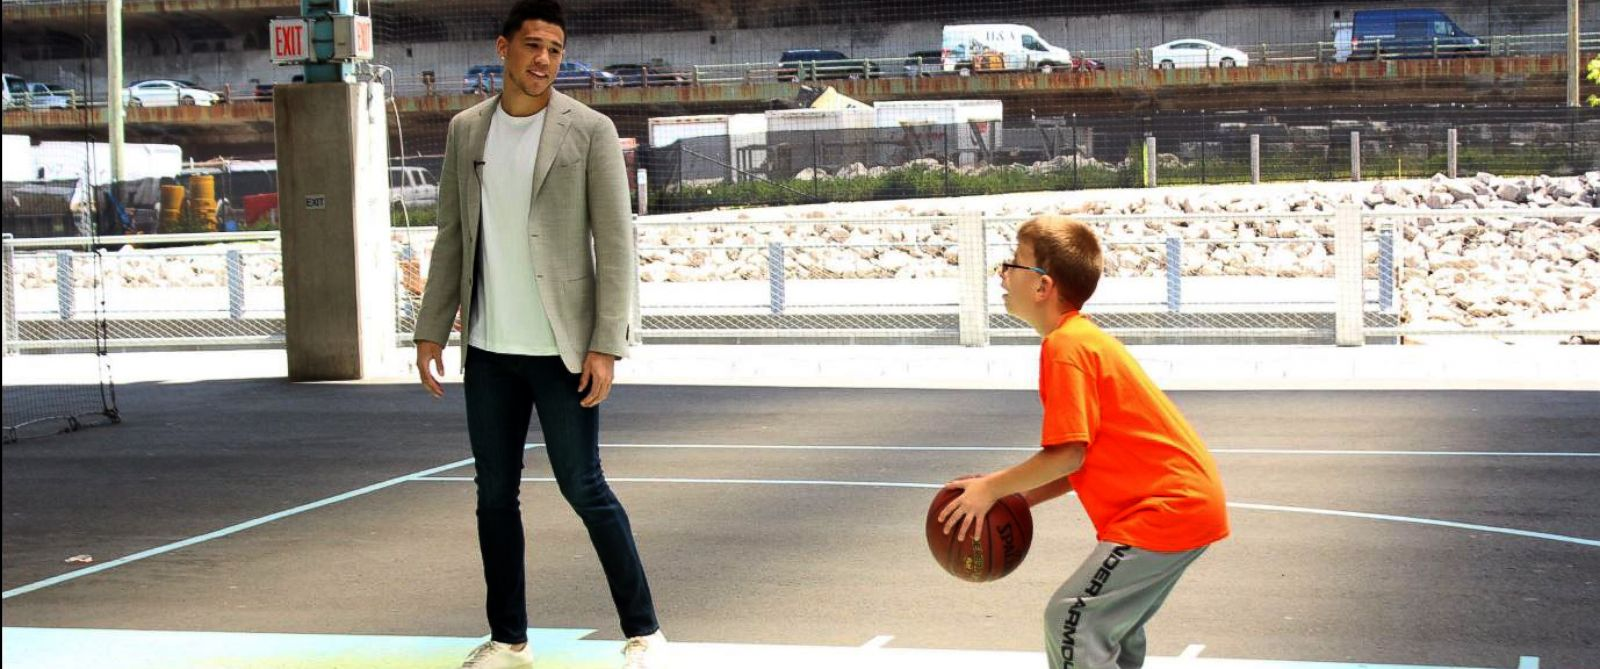 PHOTO: Devin Booker of the Phoneix Suns, left, coaching his Draft Lottery guest, Special Olympics athlete Noah.